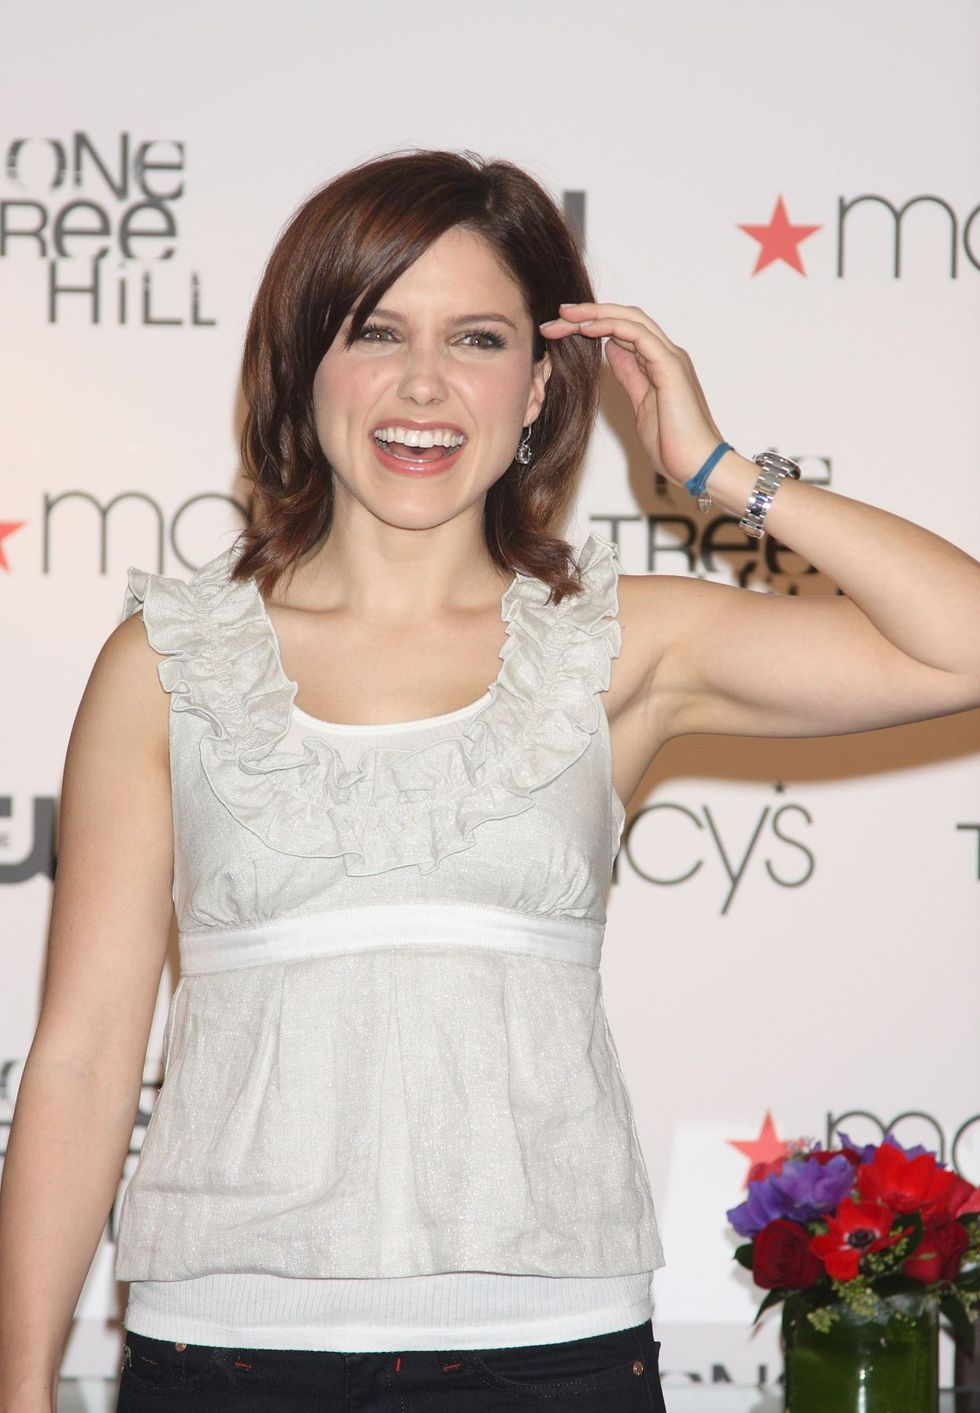 sophia-bush-at-the-cw-networks-one-tree-hill-macys-cast-signings-01